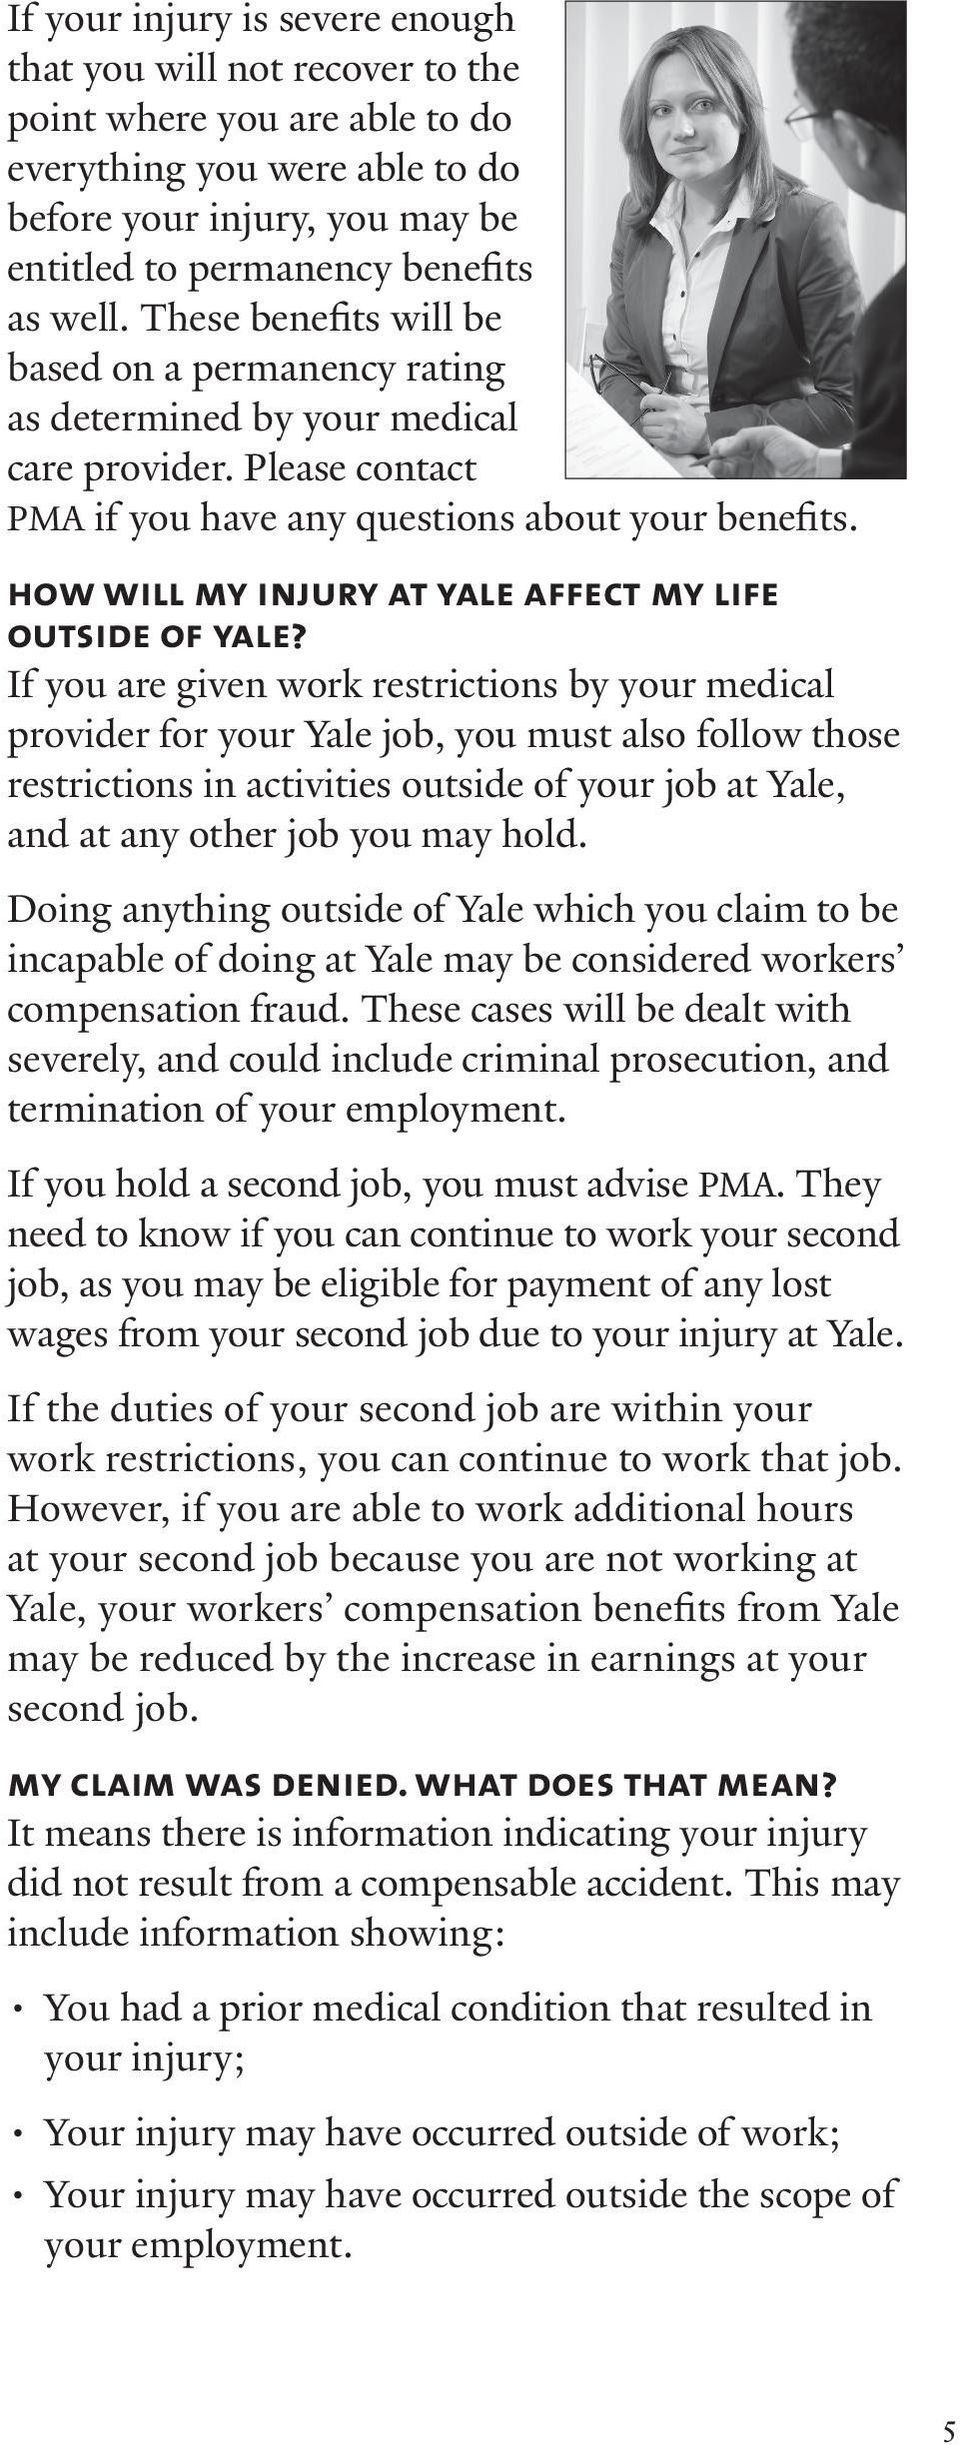 how will my injury at yale affect my life outside of yale?